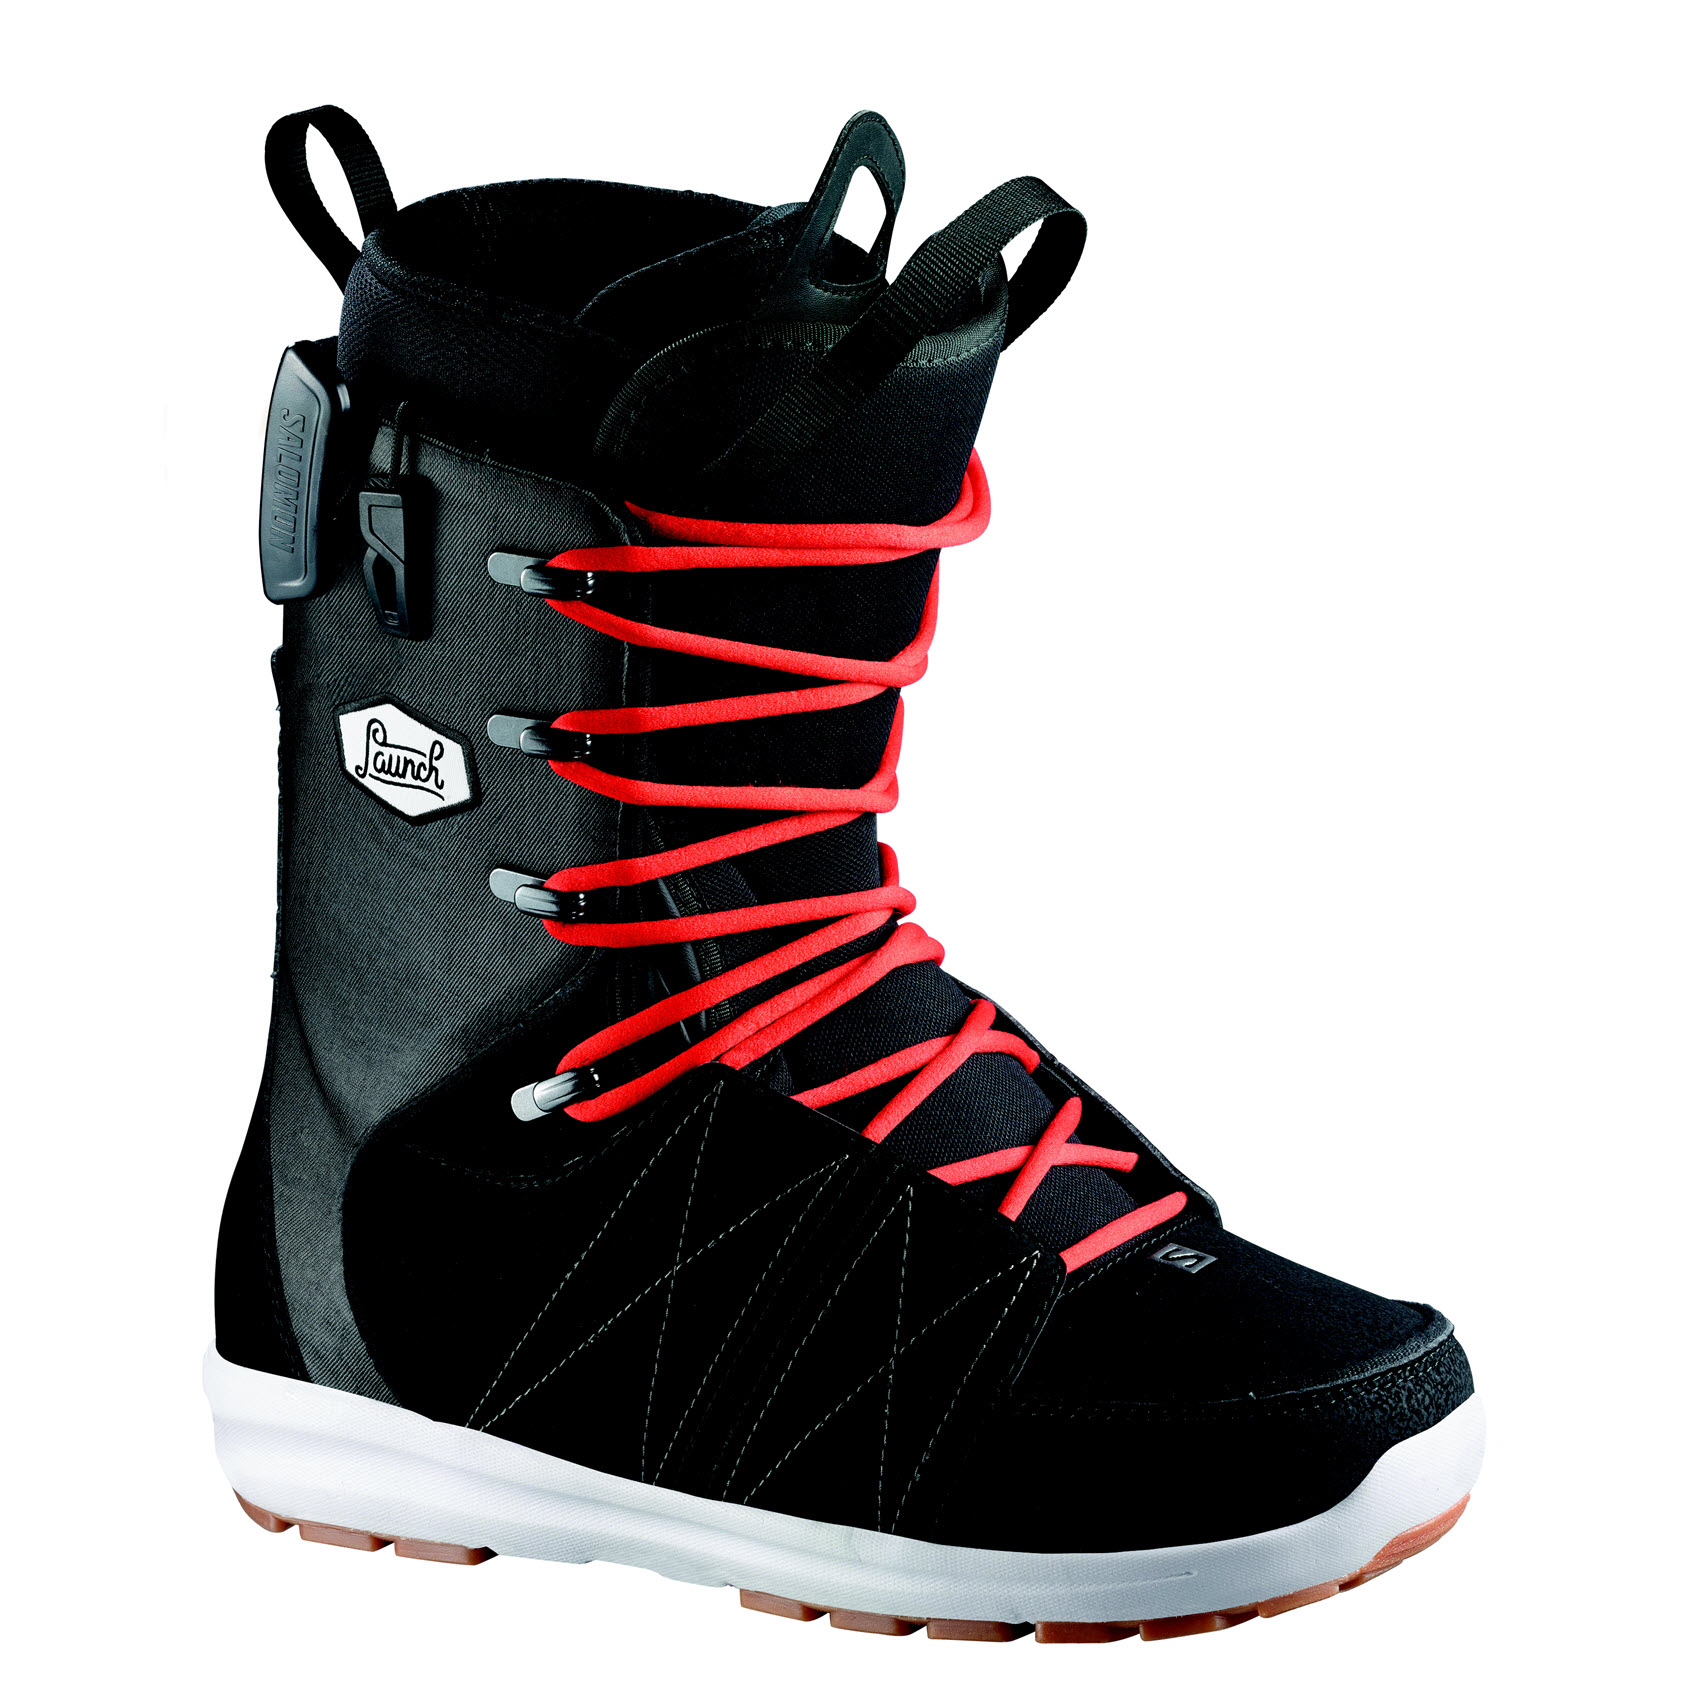 Salomon Launch Lace STR8JKT Mens Snowboard Boots 2015